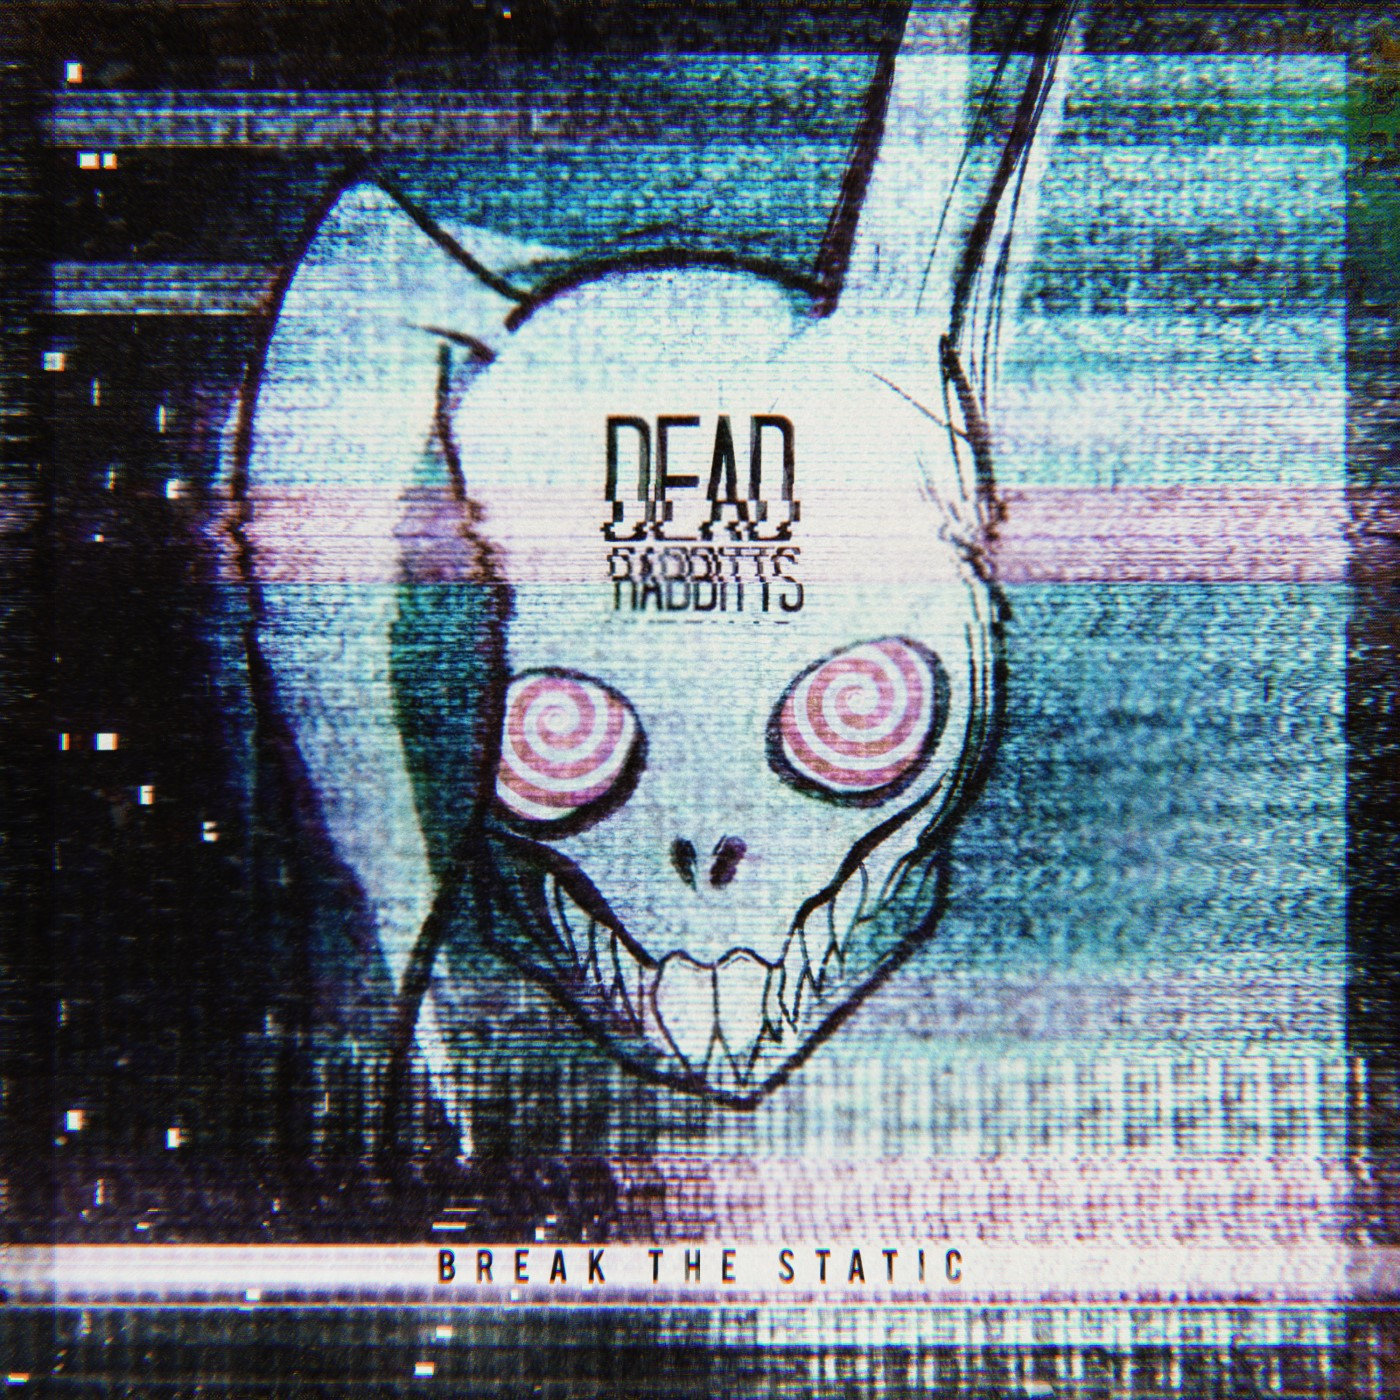 The Dead Rabbitts - Break the Static [EP] (2019)